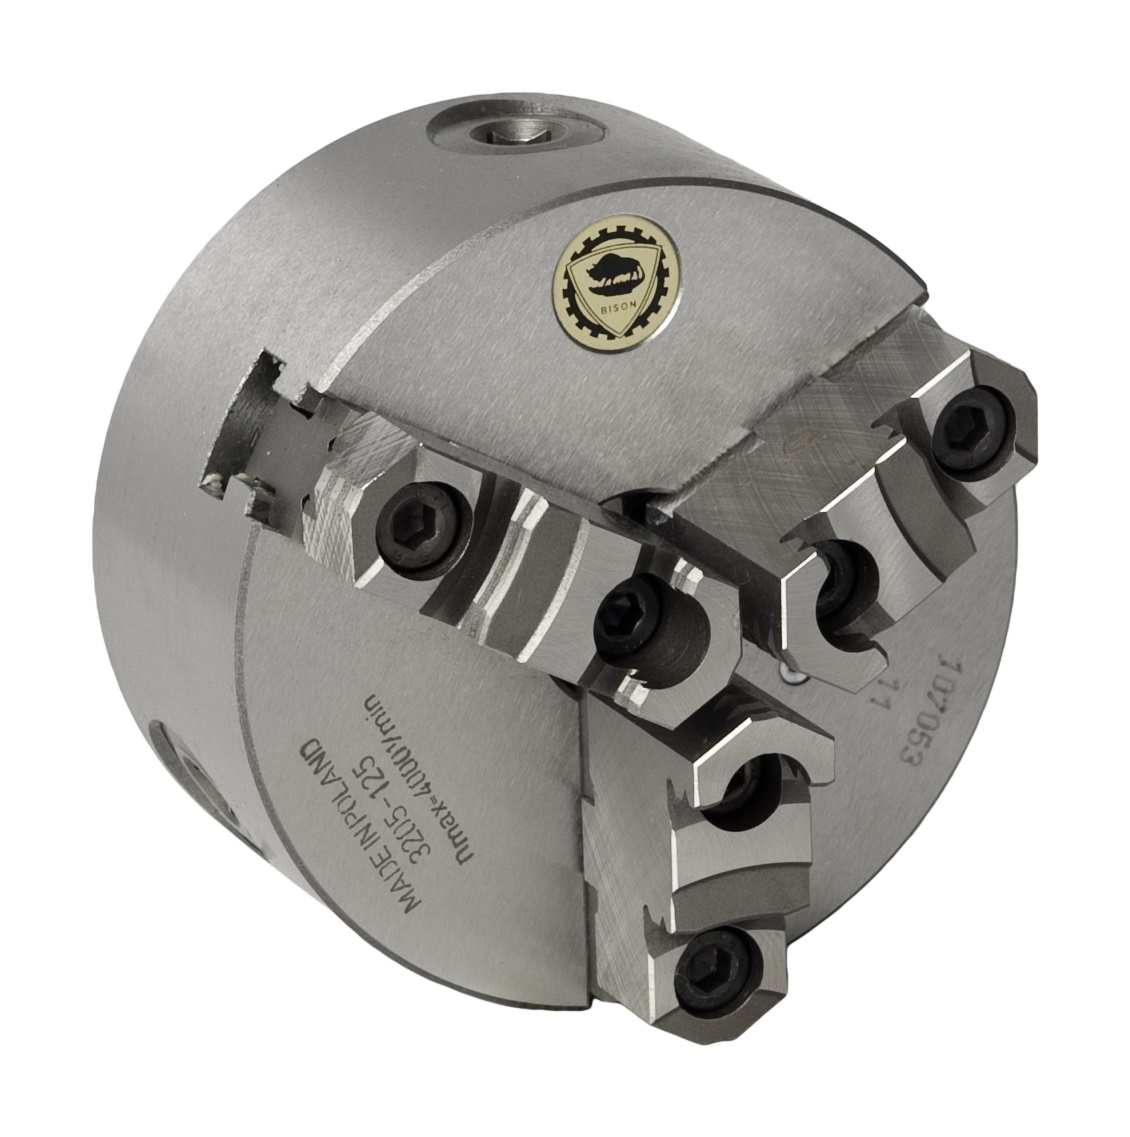 Bison 3205 3-Jaw Cast Iron Self-Centring Scroll Chuck with Plain Back Mounting - DIN 6350.